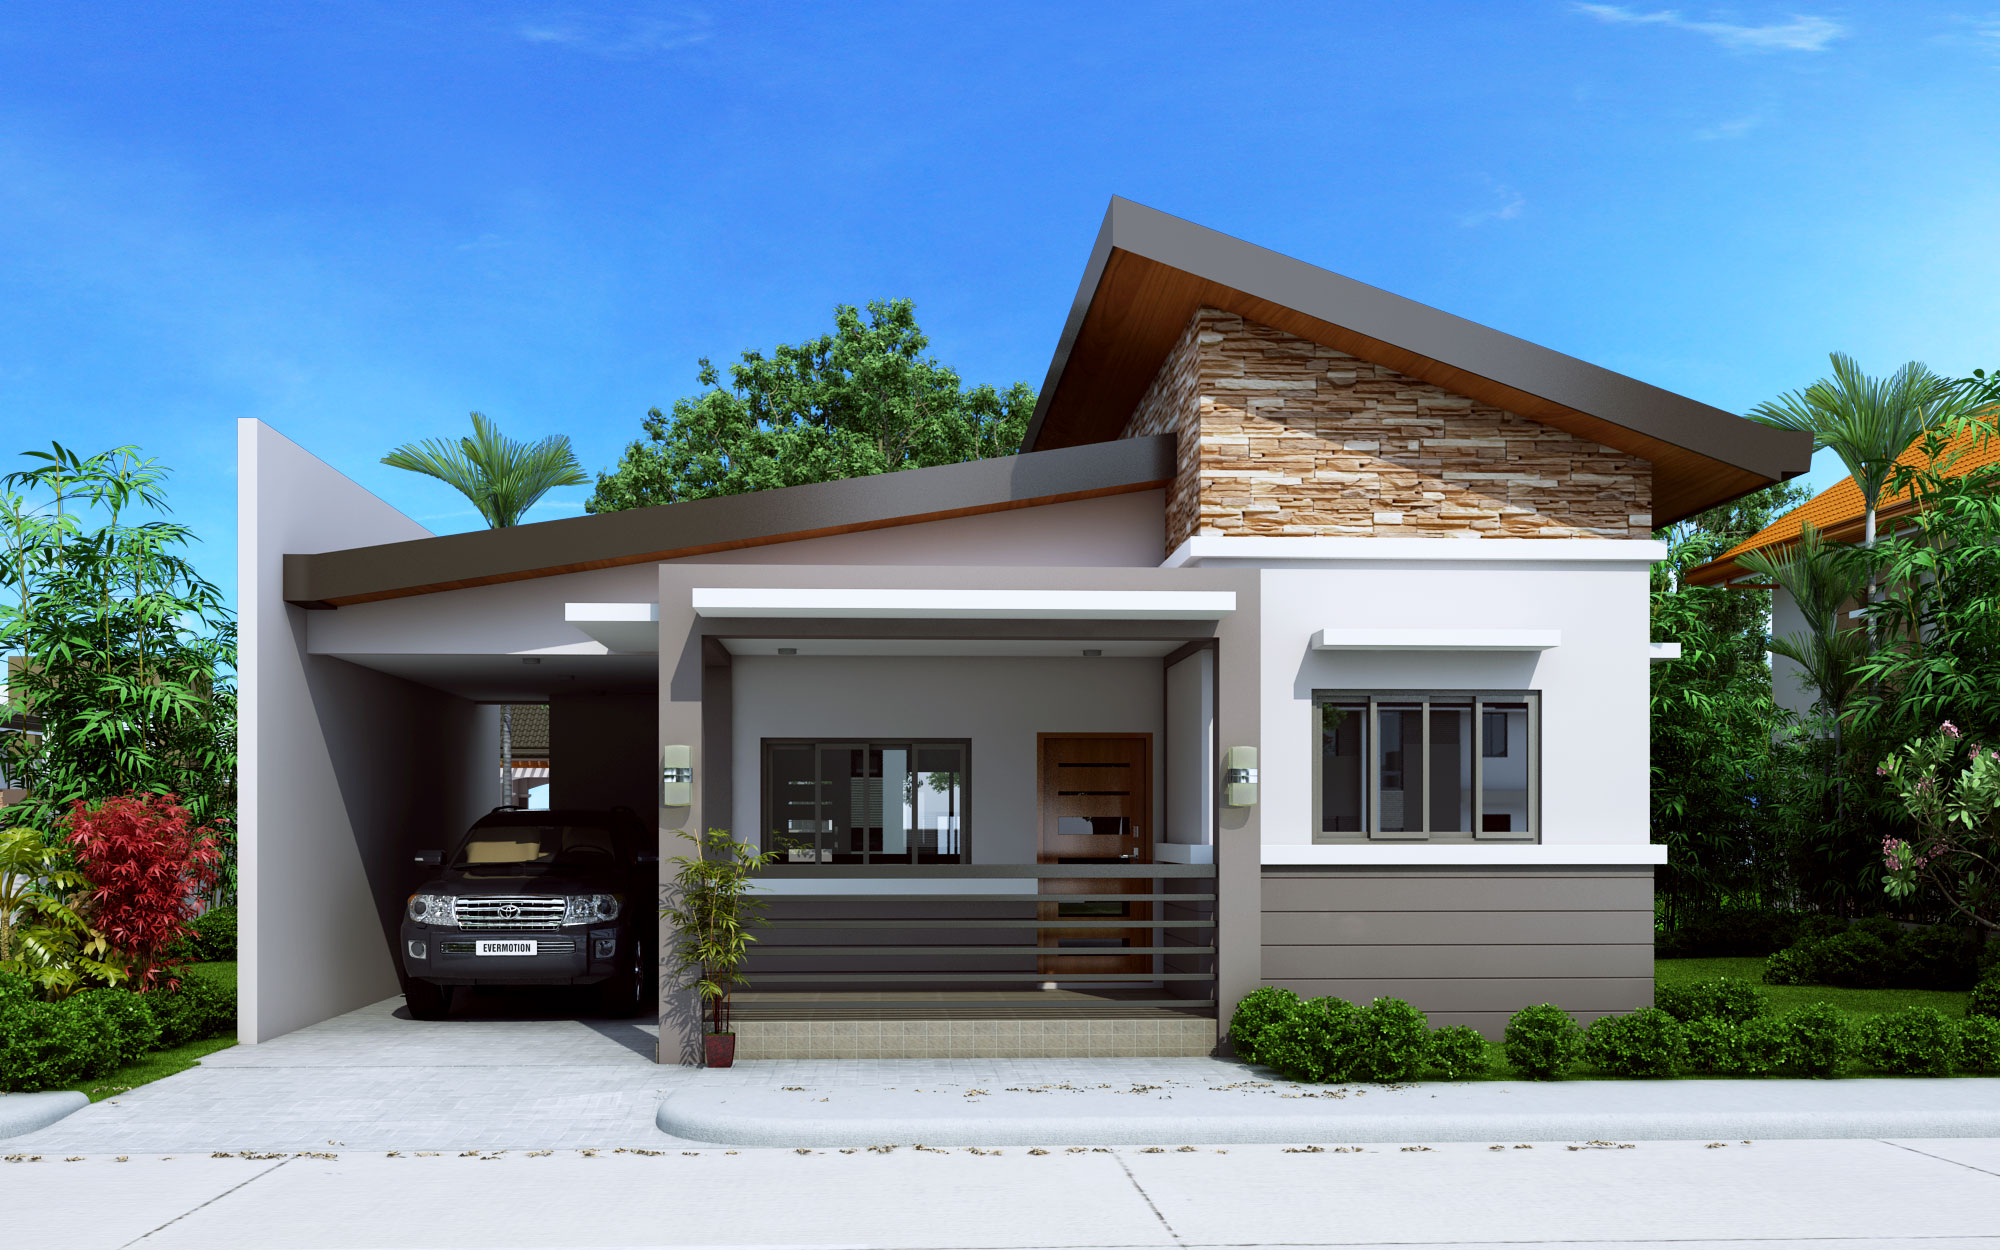 3 bedroom modern house home ulric home 13955